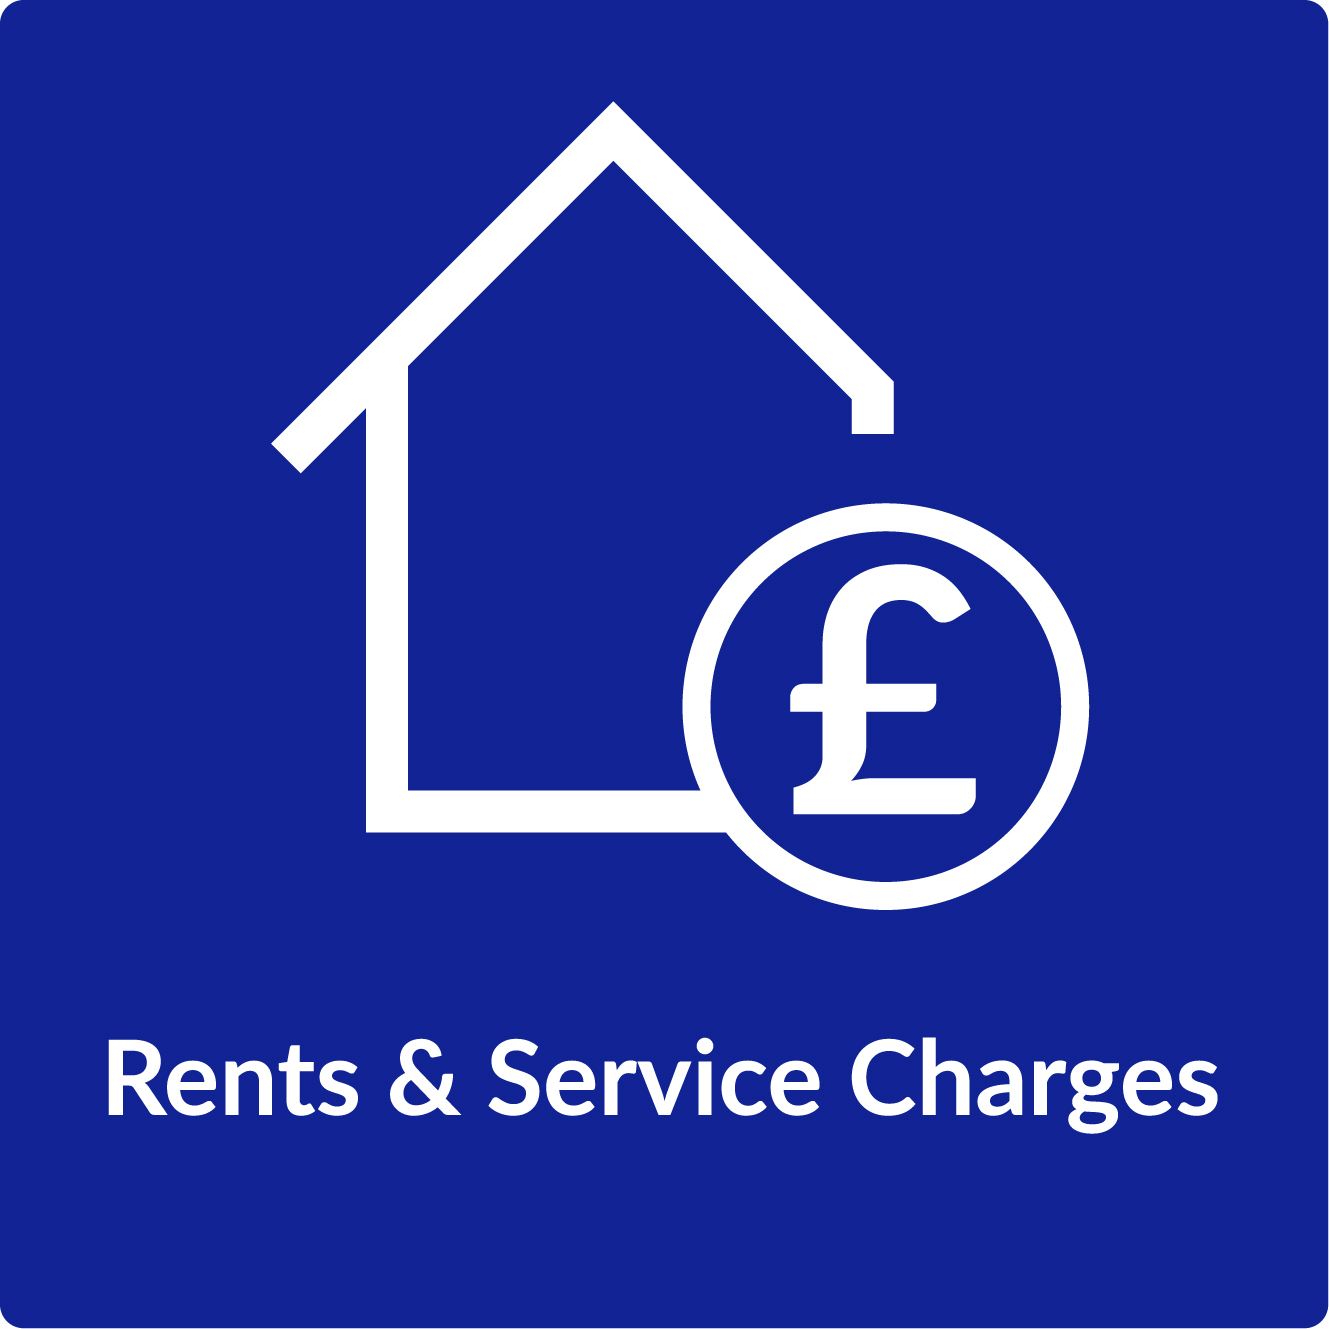 Rent & Service Charges